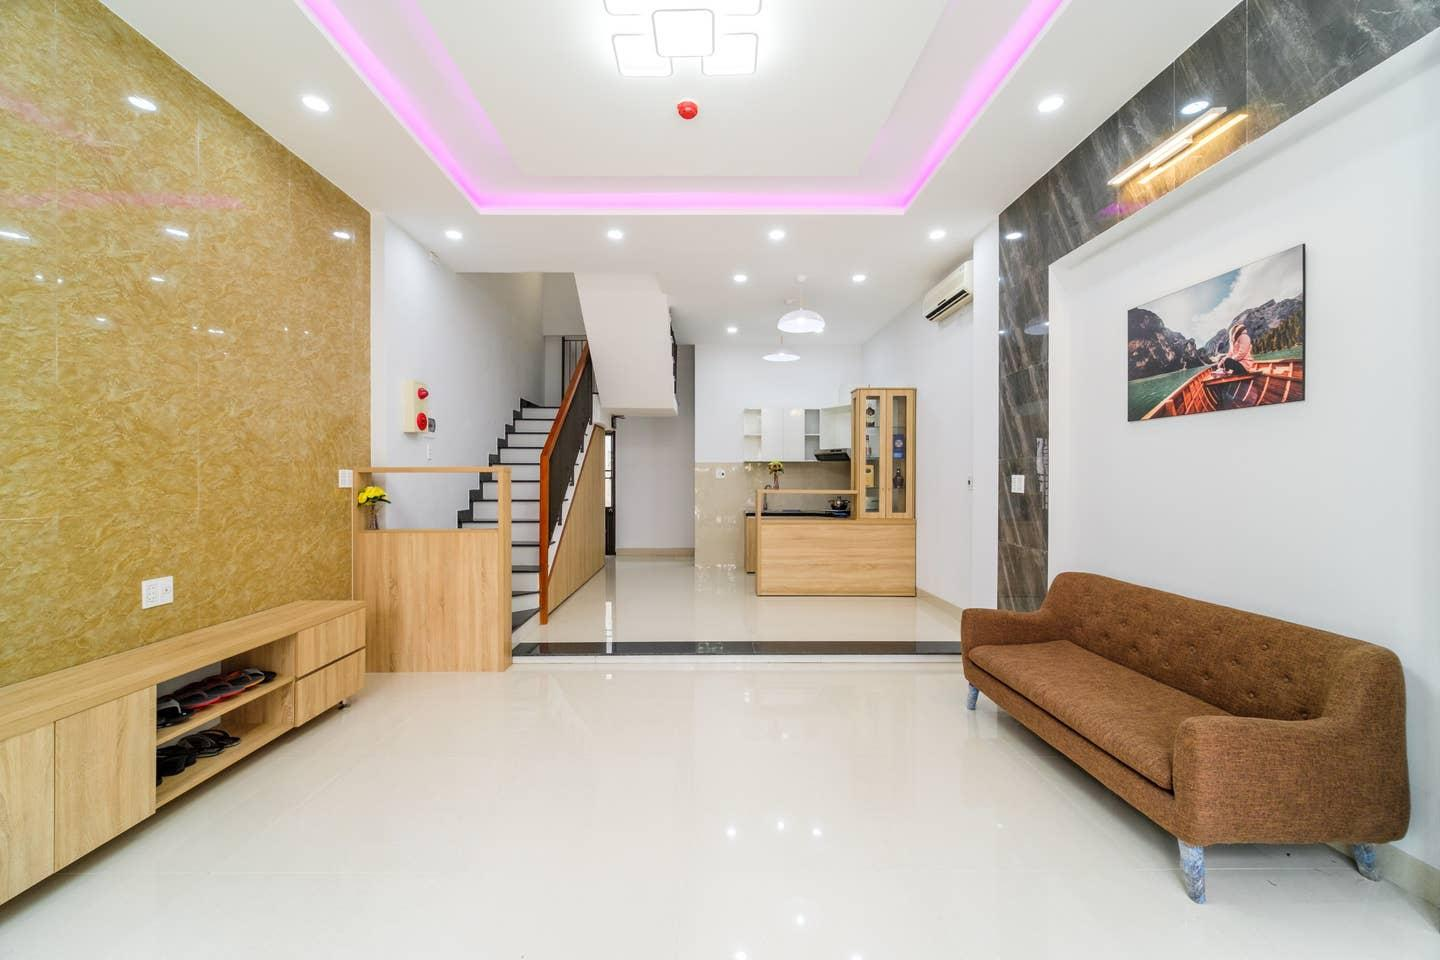 Apartment  CP Residences   6 Bedroom House 5 mins fm My Khe photo 18206923